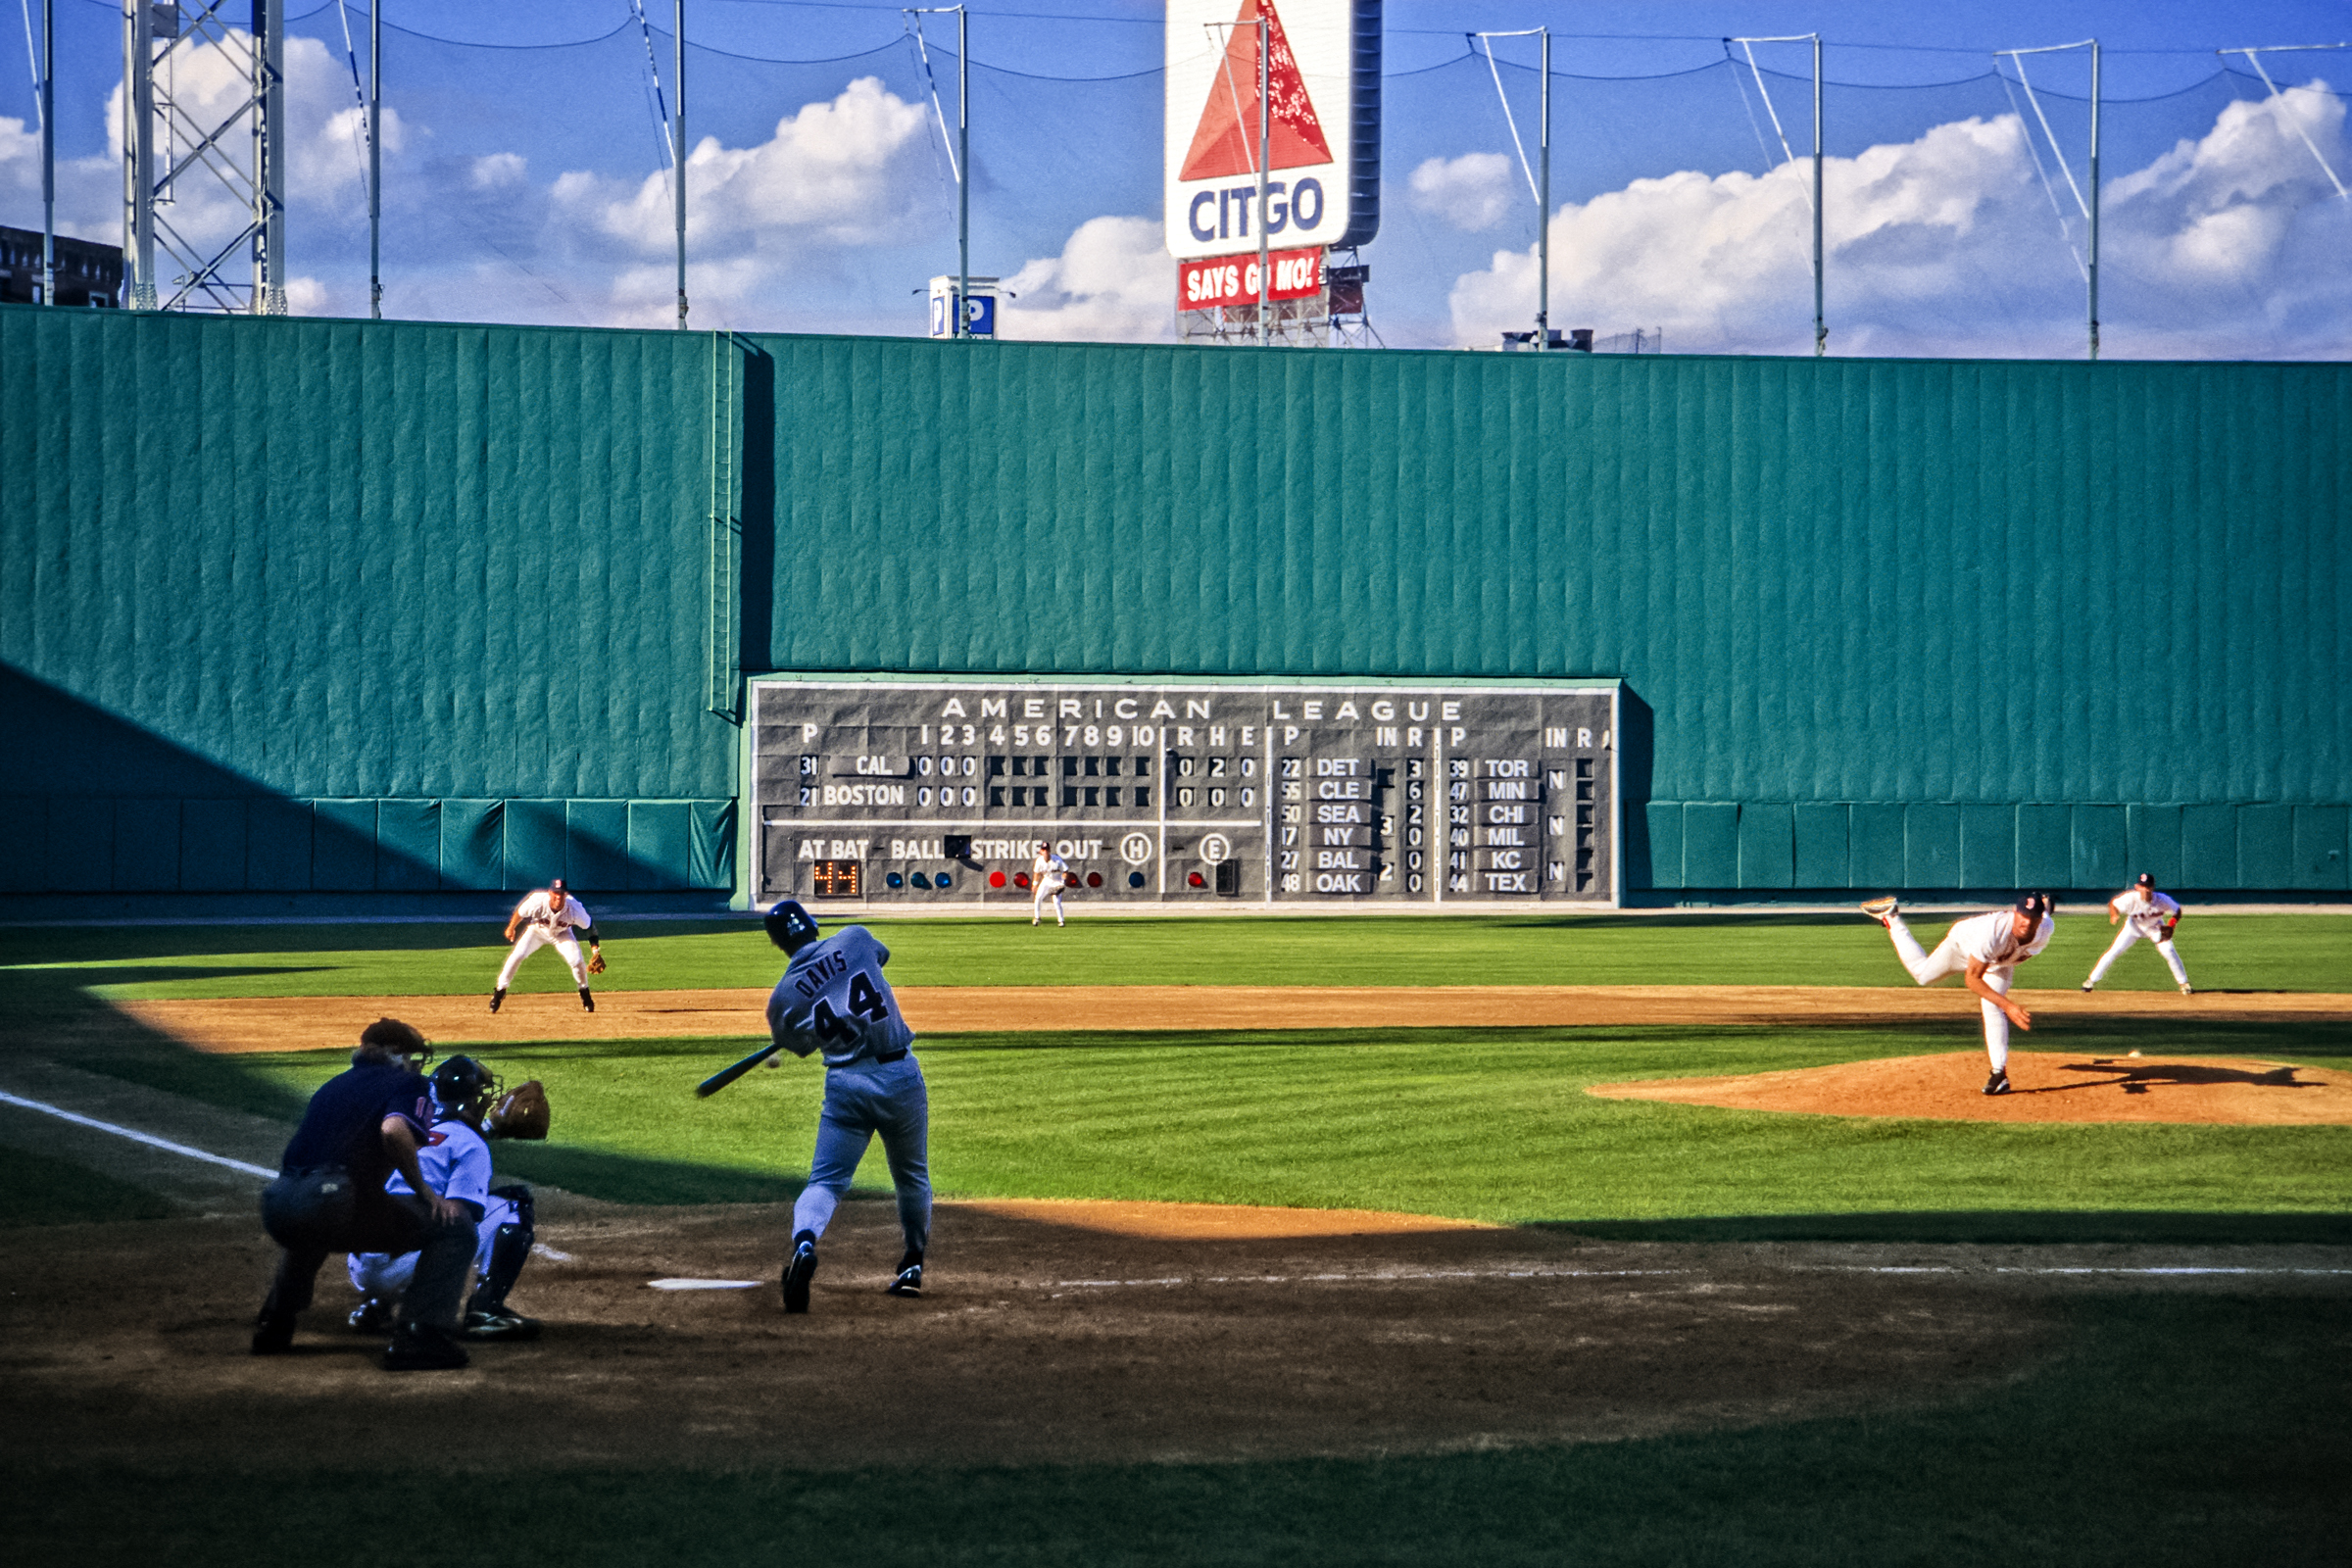 fenway park and parks - photo #30